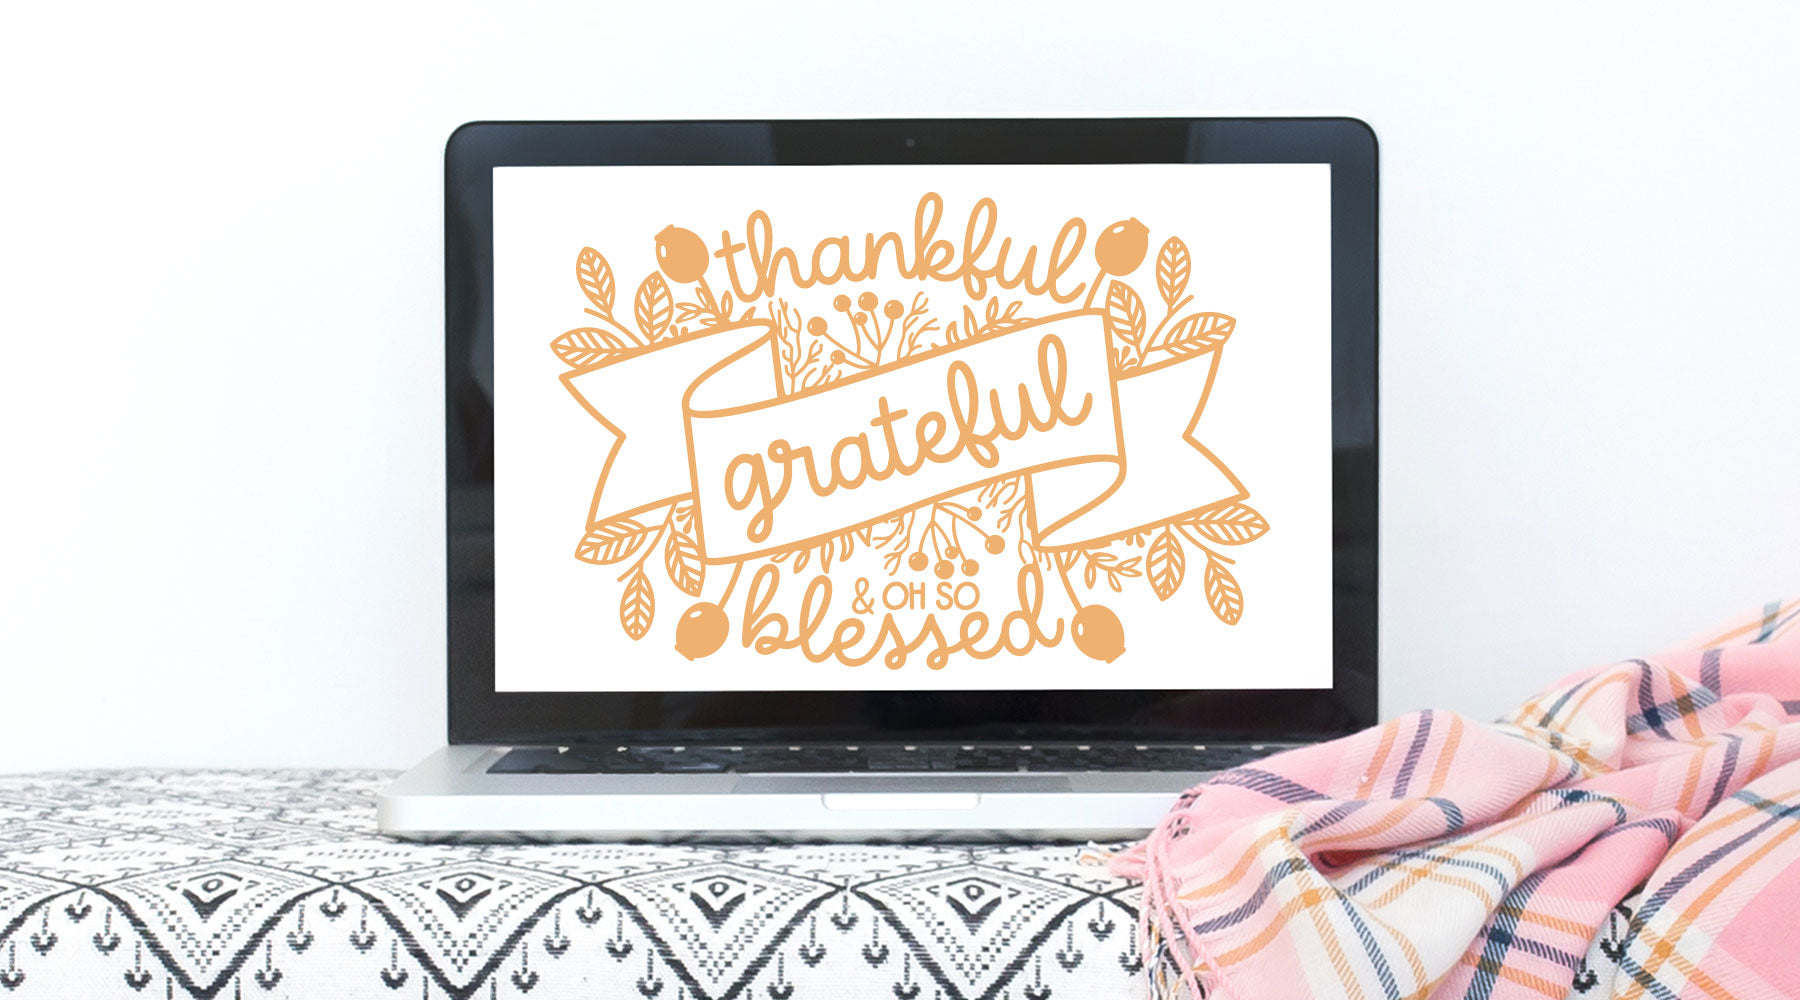 Floral Adorned Thankful Grate and Blessed Quote | SVG DXF EPS PNG Cut Files | Free for Personal Use